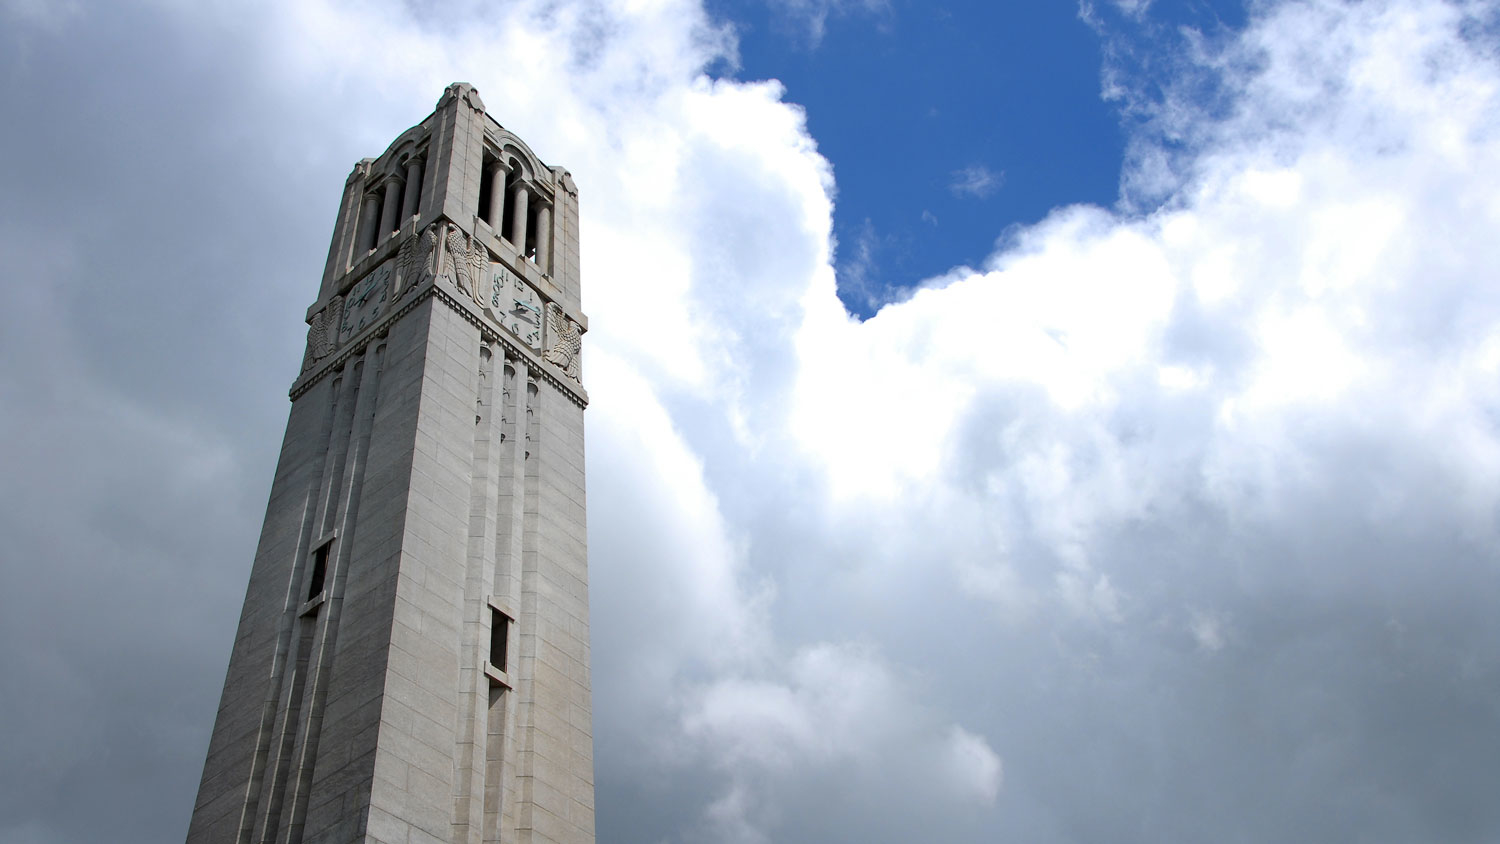 The belltower on a cloudy day